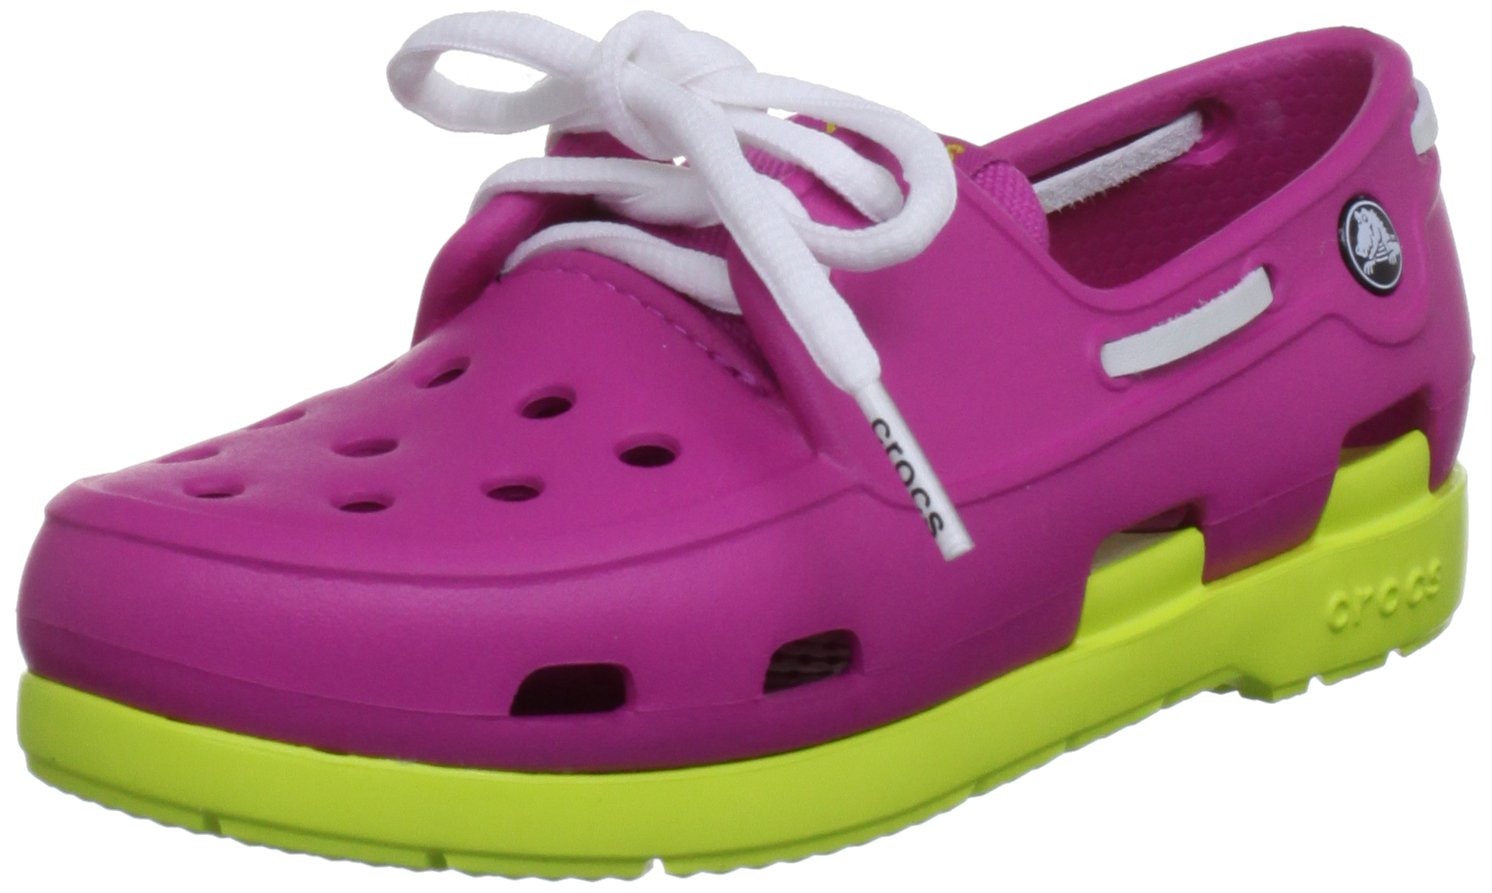 Crocs Kids' Beach Line Boat Shoe crocs 14404